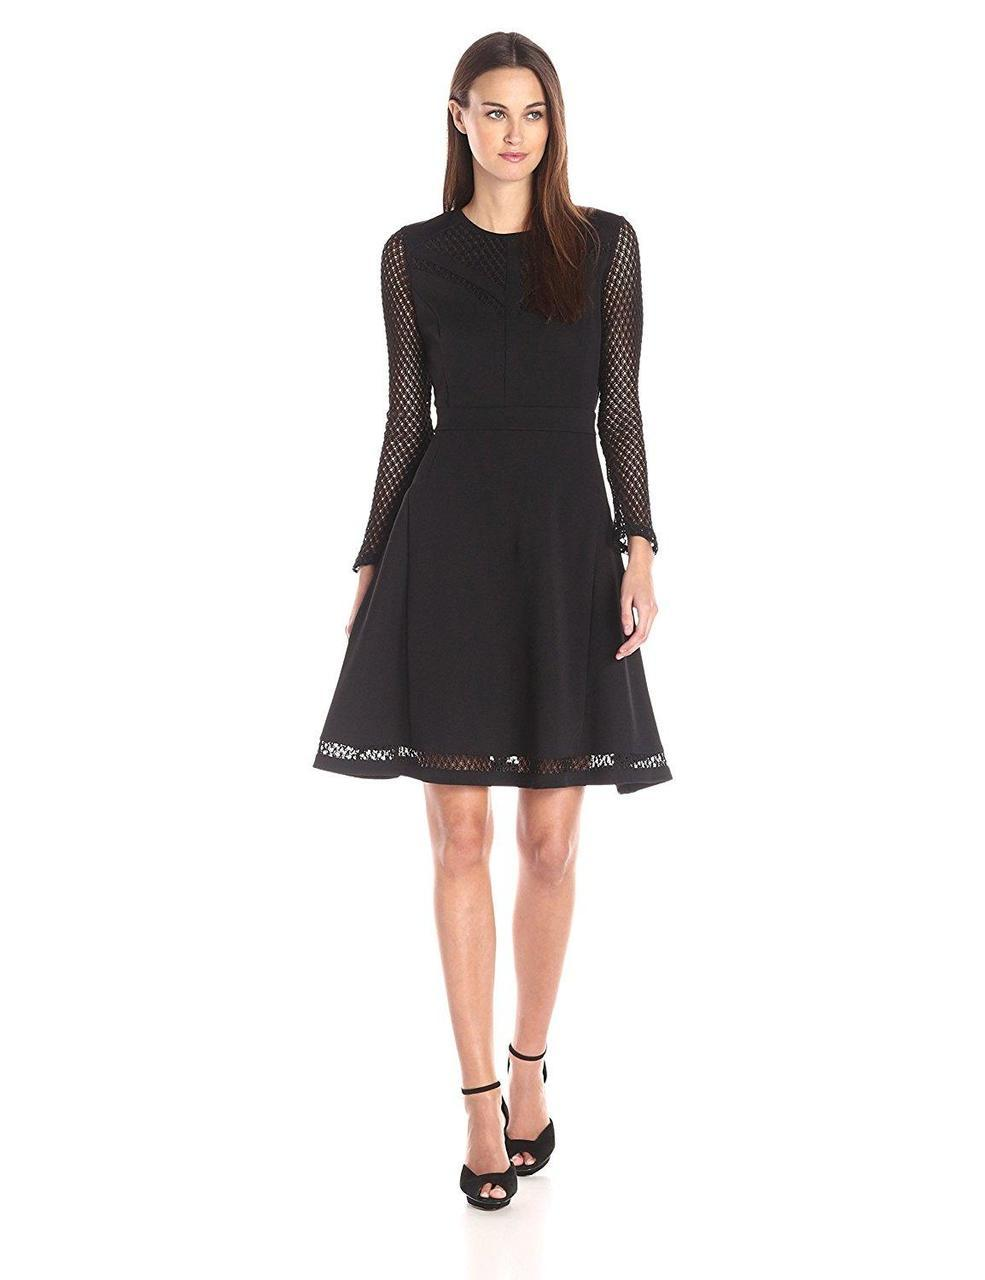 Adrianna Papell - Lace Jewel Neck A-line Dress 15247150 in Black